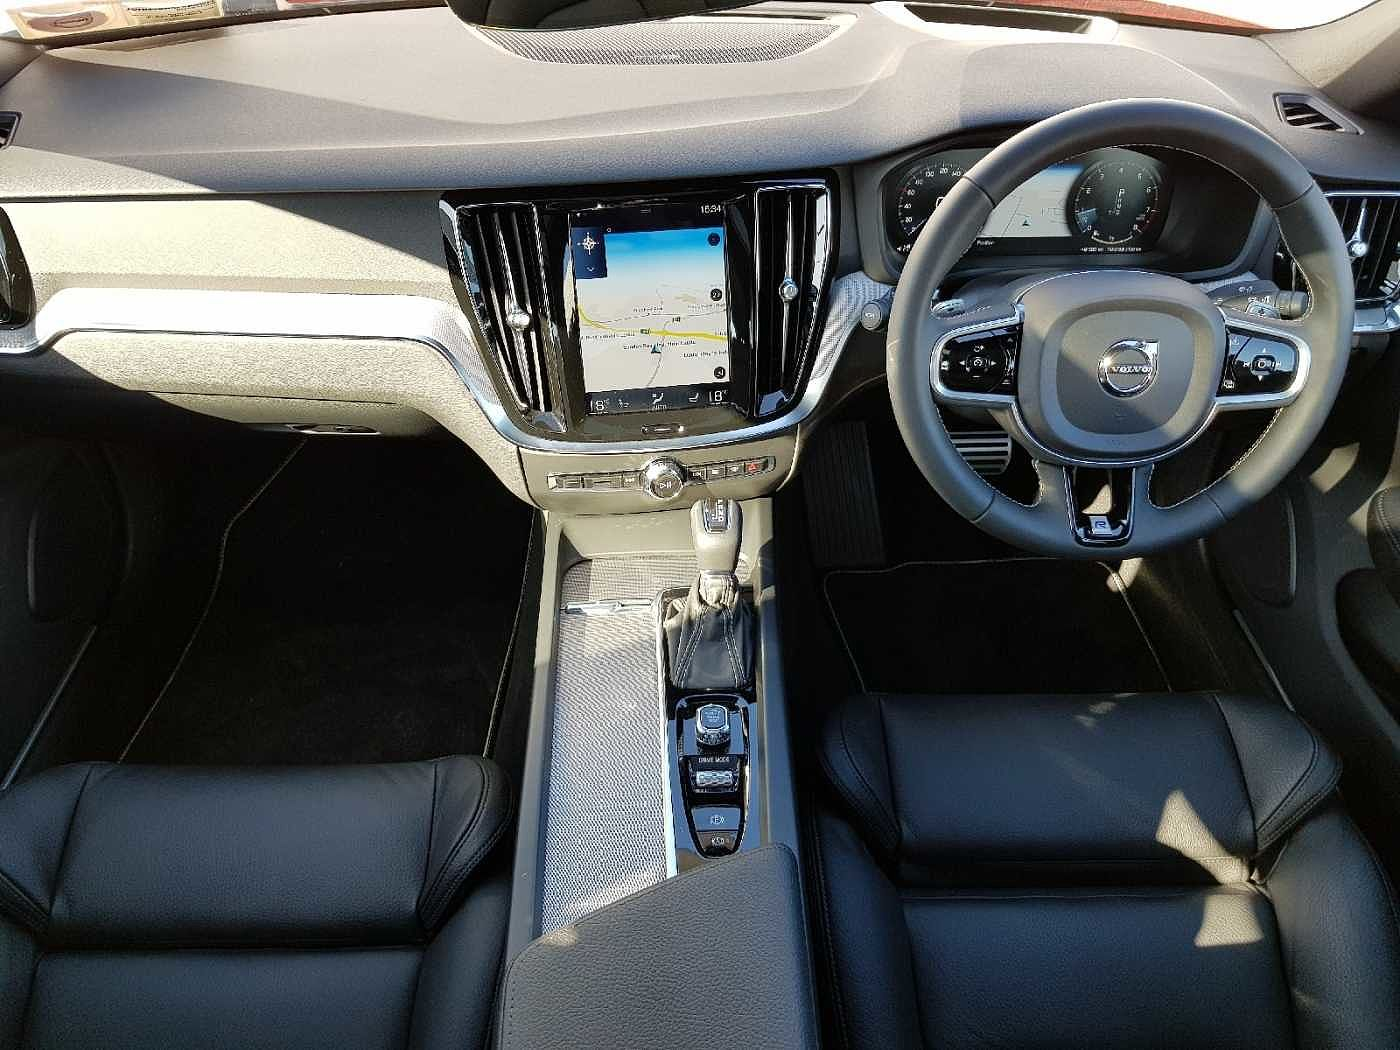 Volvo  T5 R-Design Auto (Panoramic Sunroof, Head Up Display, Adaptive Cruise)